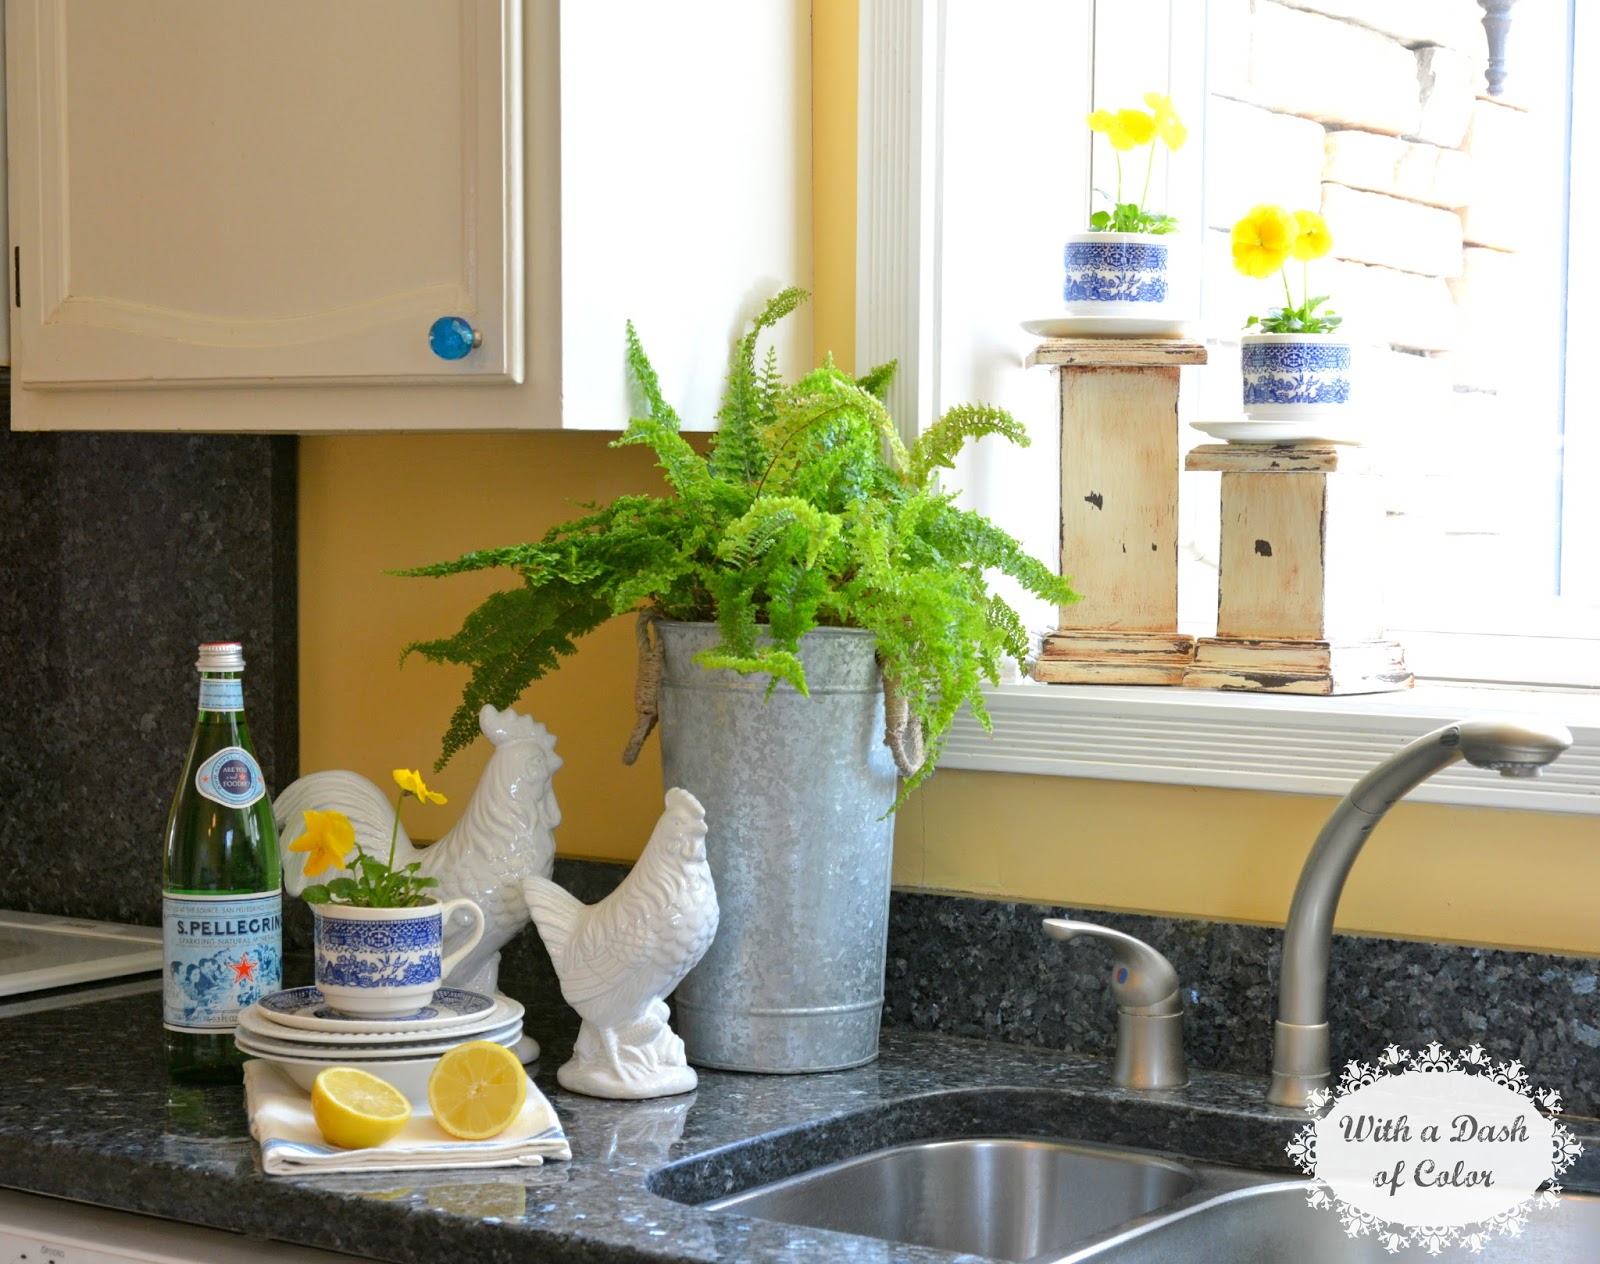 With a dash of color decorating the kitchen window sill for Kitchen window sill decoration ideas